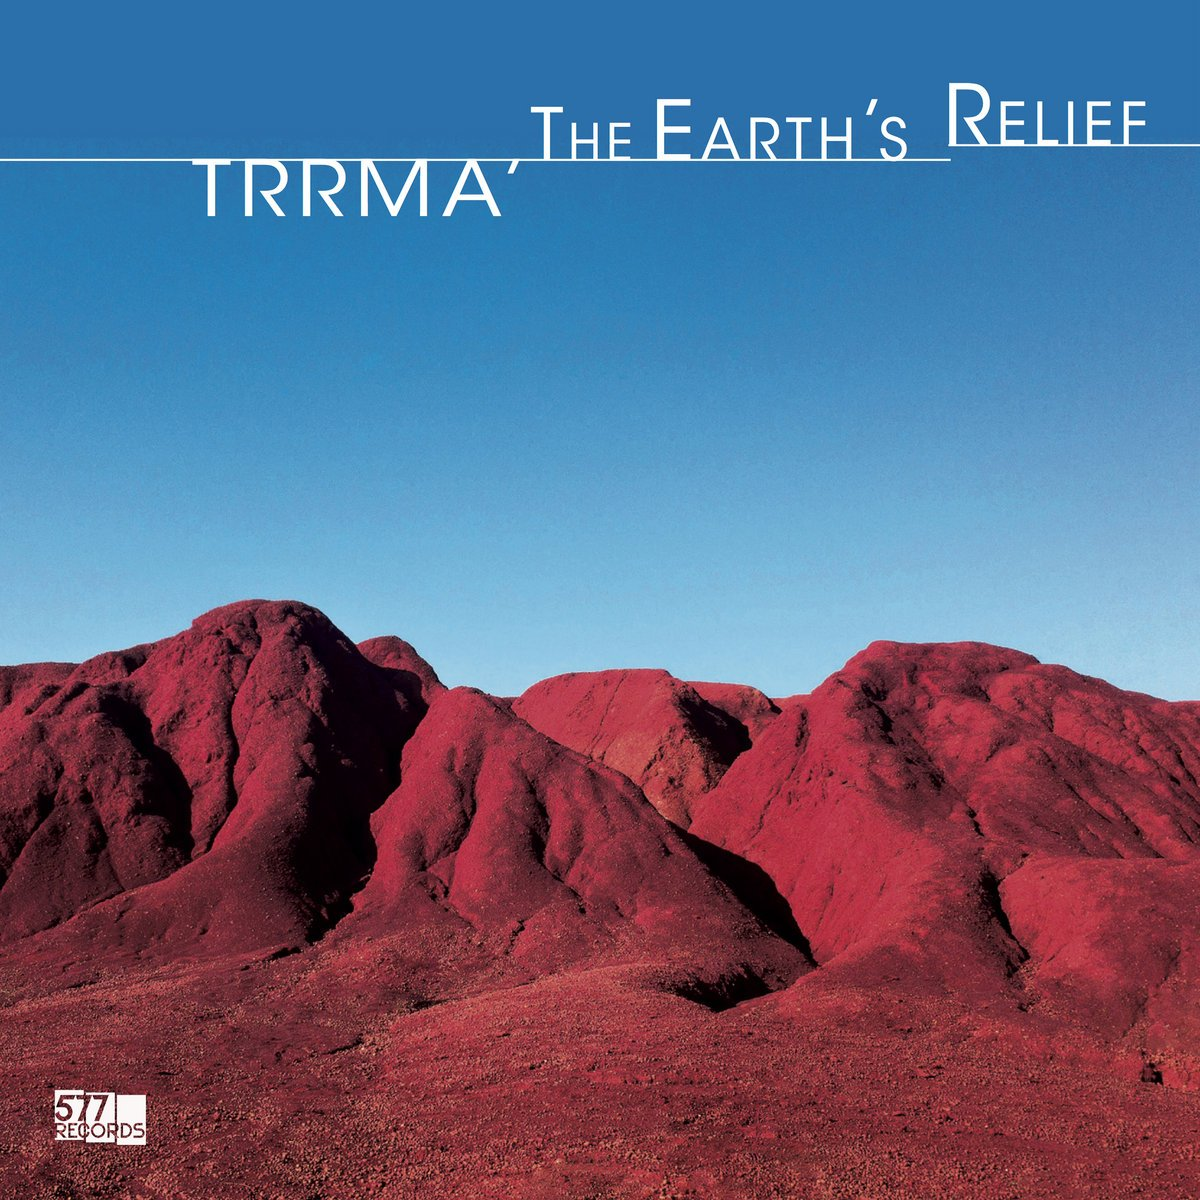 Trrmà ANNOUNCES The Earth's Relief Album SHARES 'Makalu' Video ile ilgili görsel sonucu